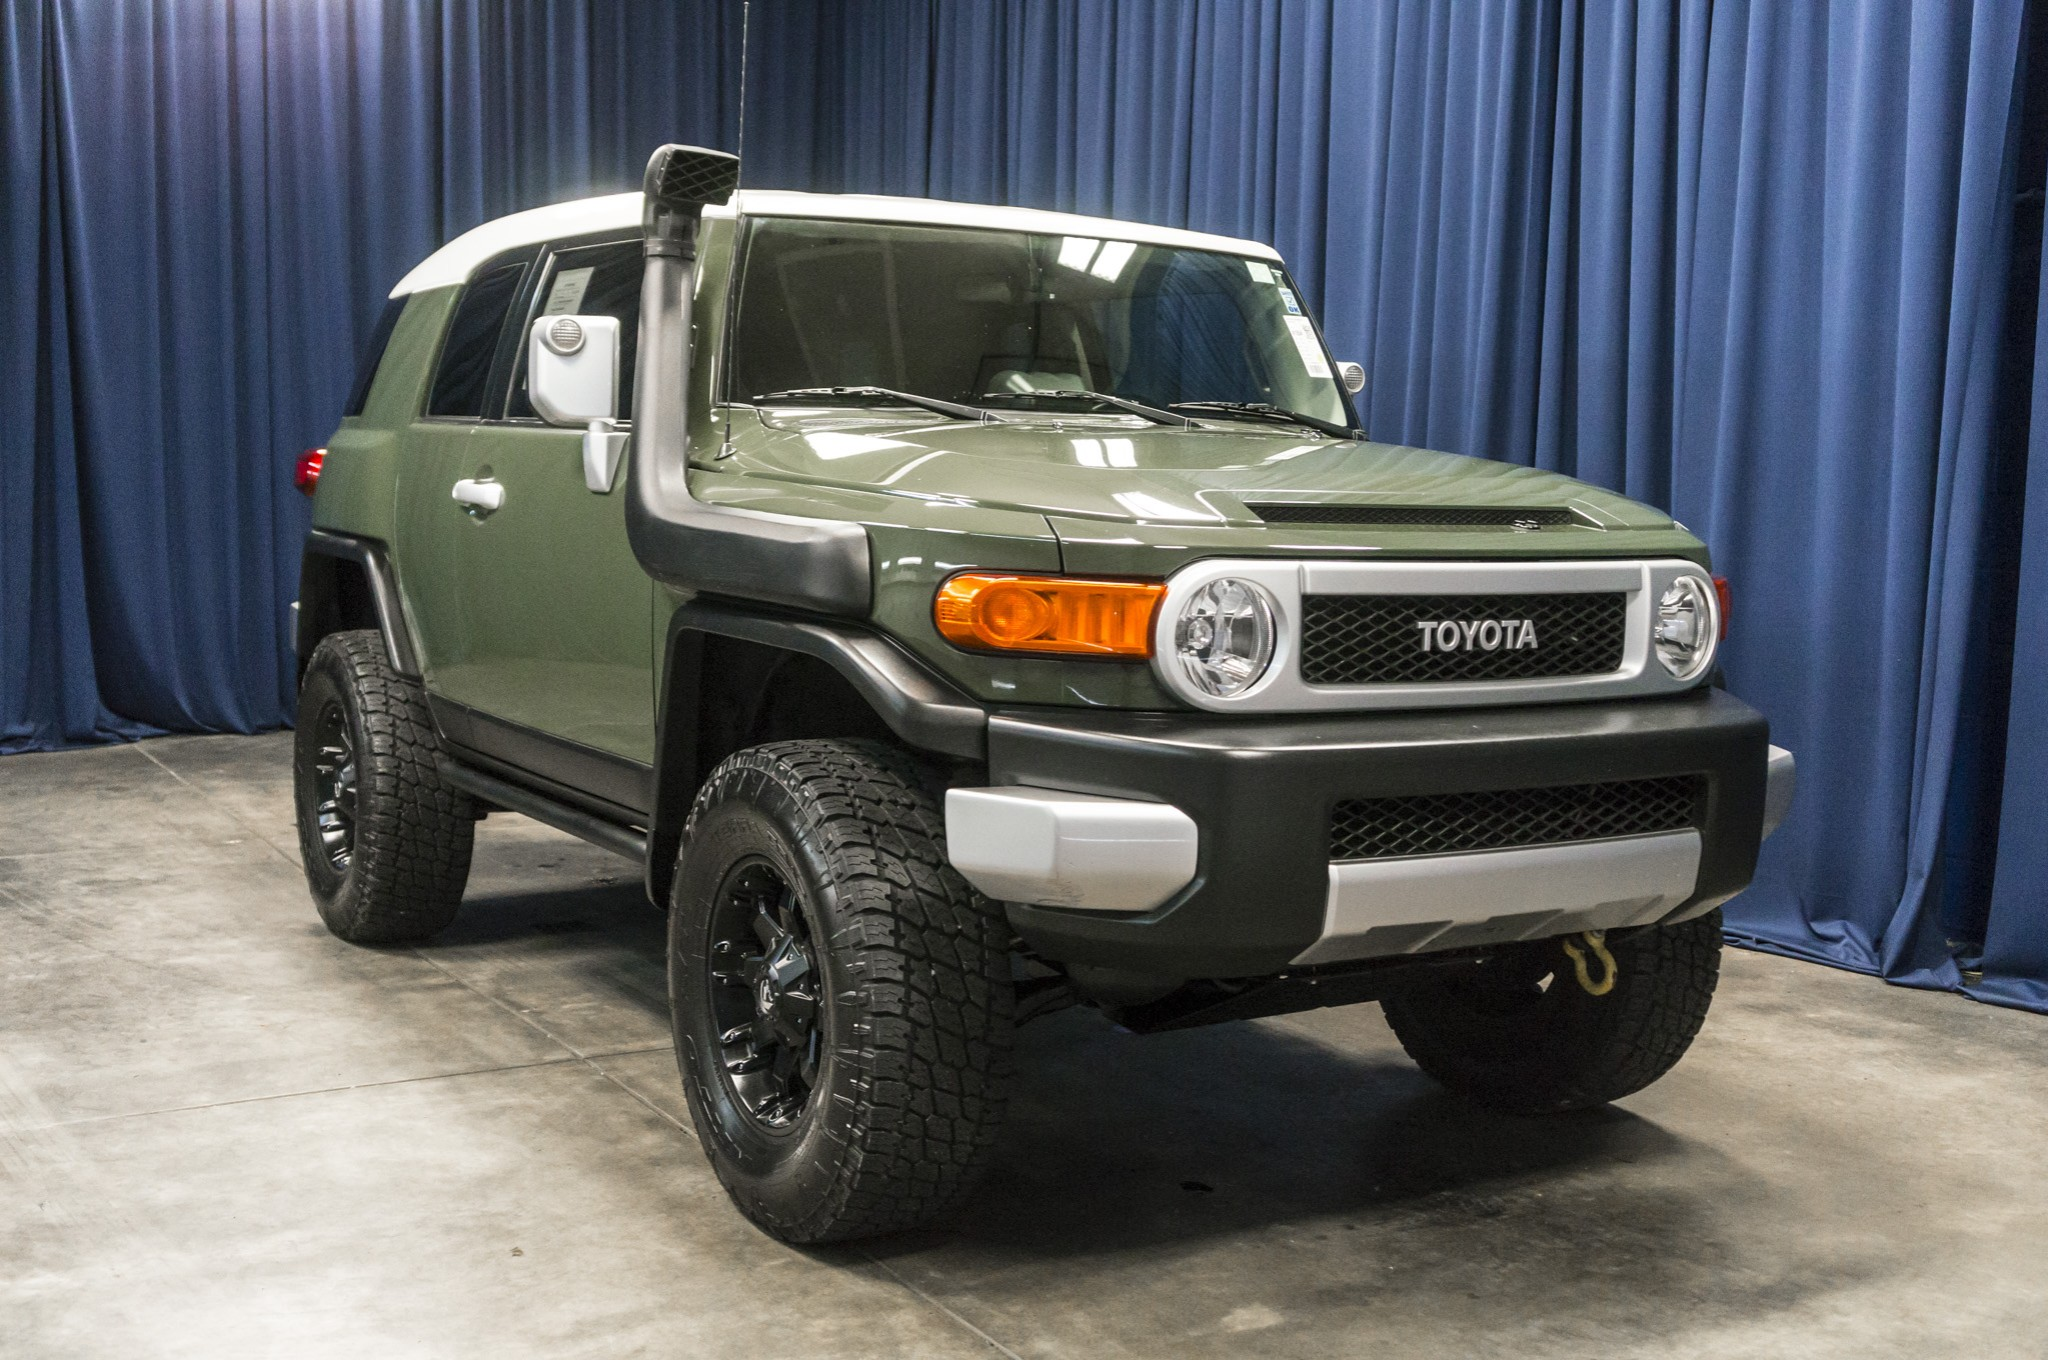 used lifted 2013 toyota fj cruiser team offroad 4x4 suv for sale 41554. Black Bedroom Furniture Sets. Home Design Ideas